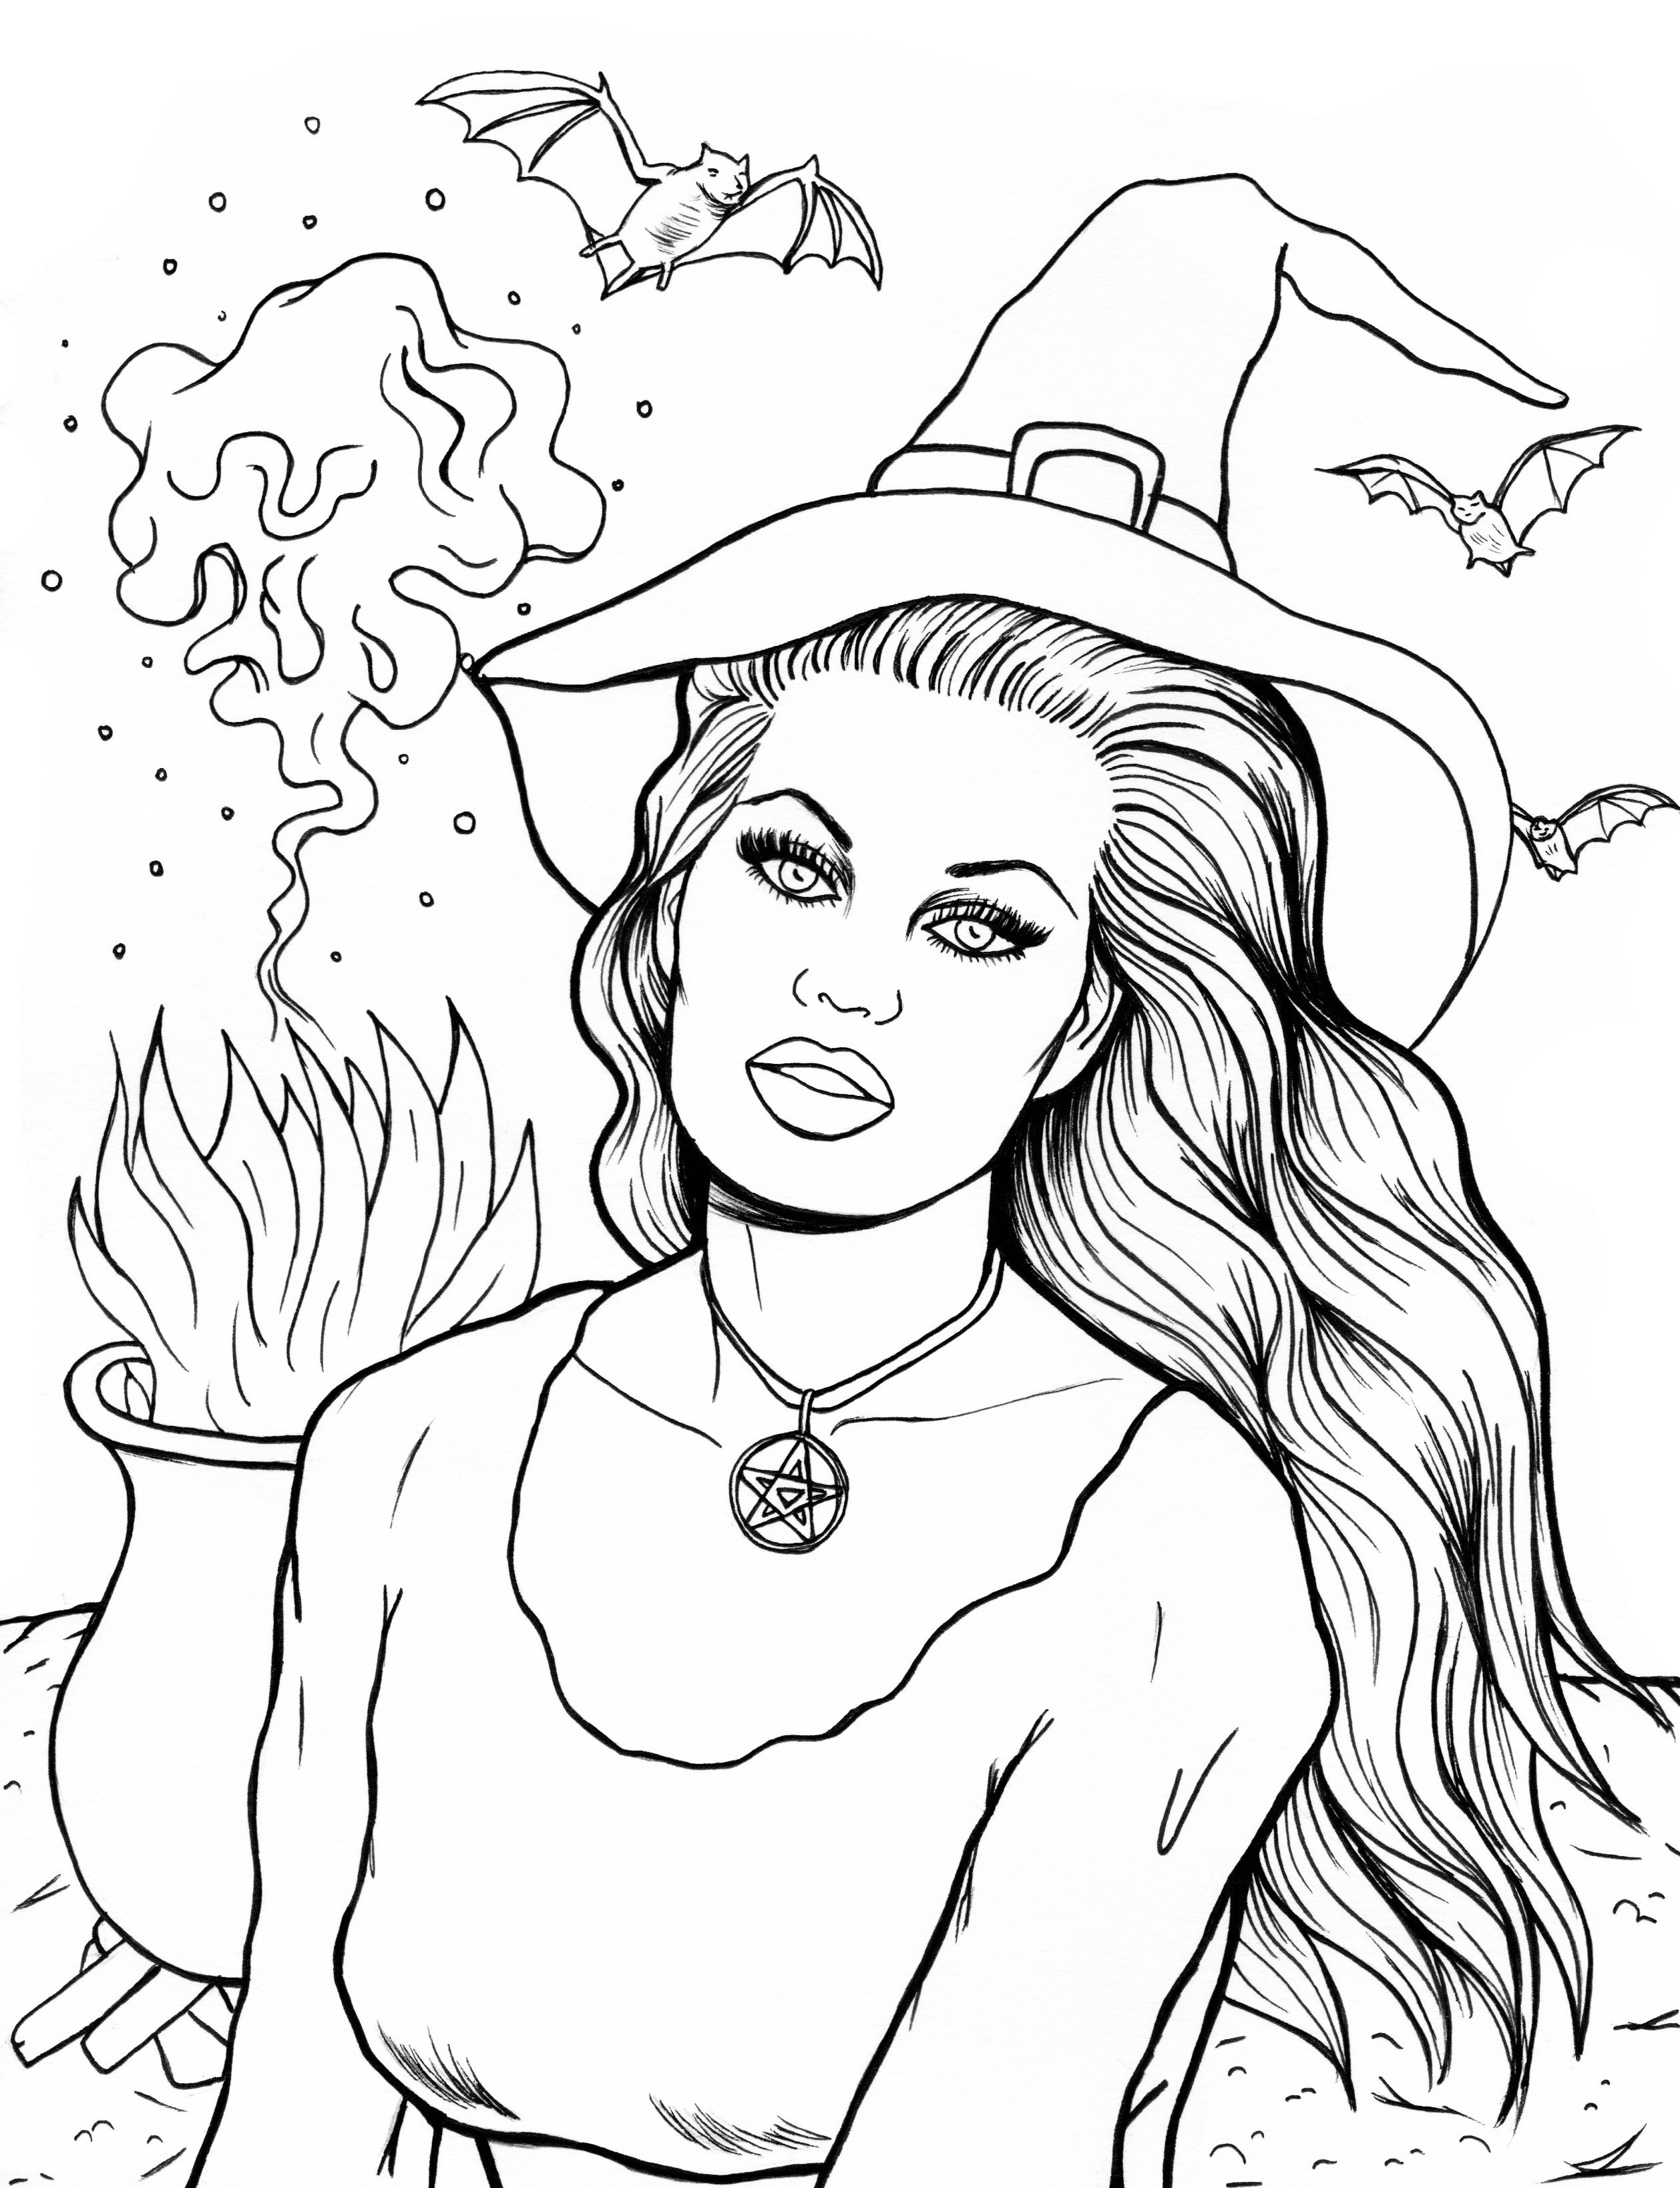 Rookie » Saturday Printable: Halloween Coloring Pages